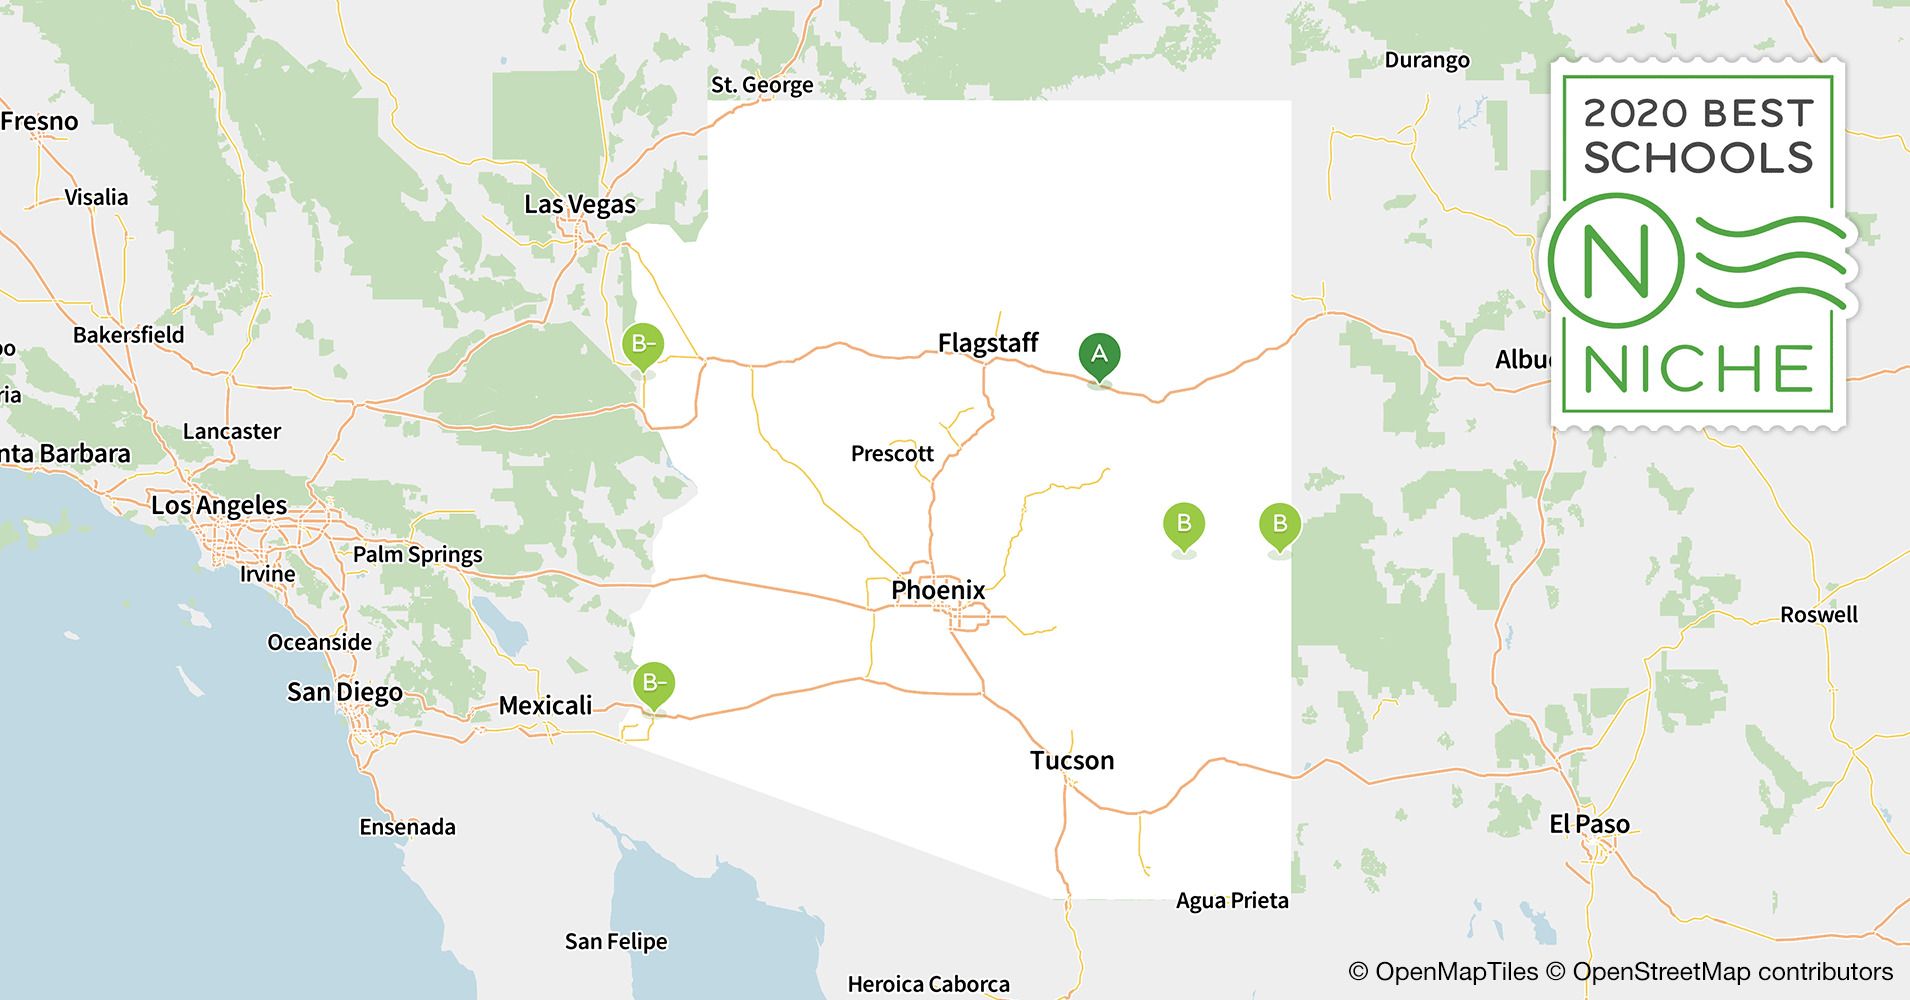 2020 Largest School Districts in Arizona - Niche